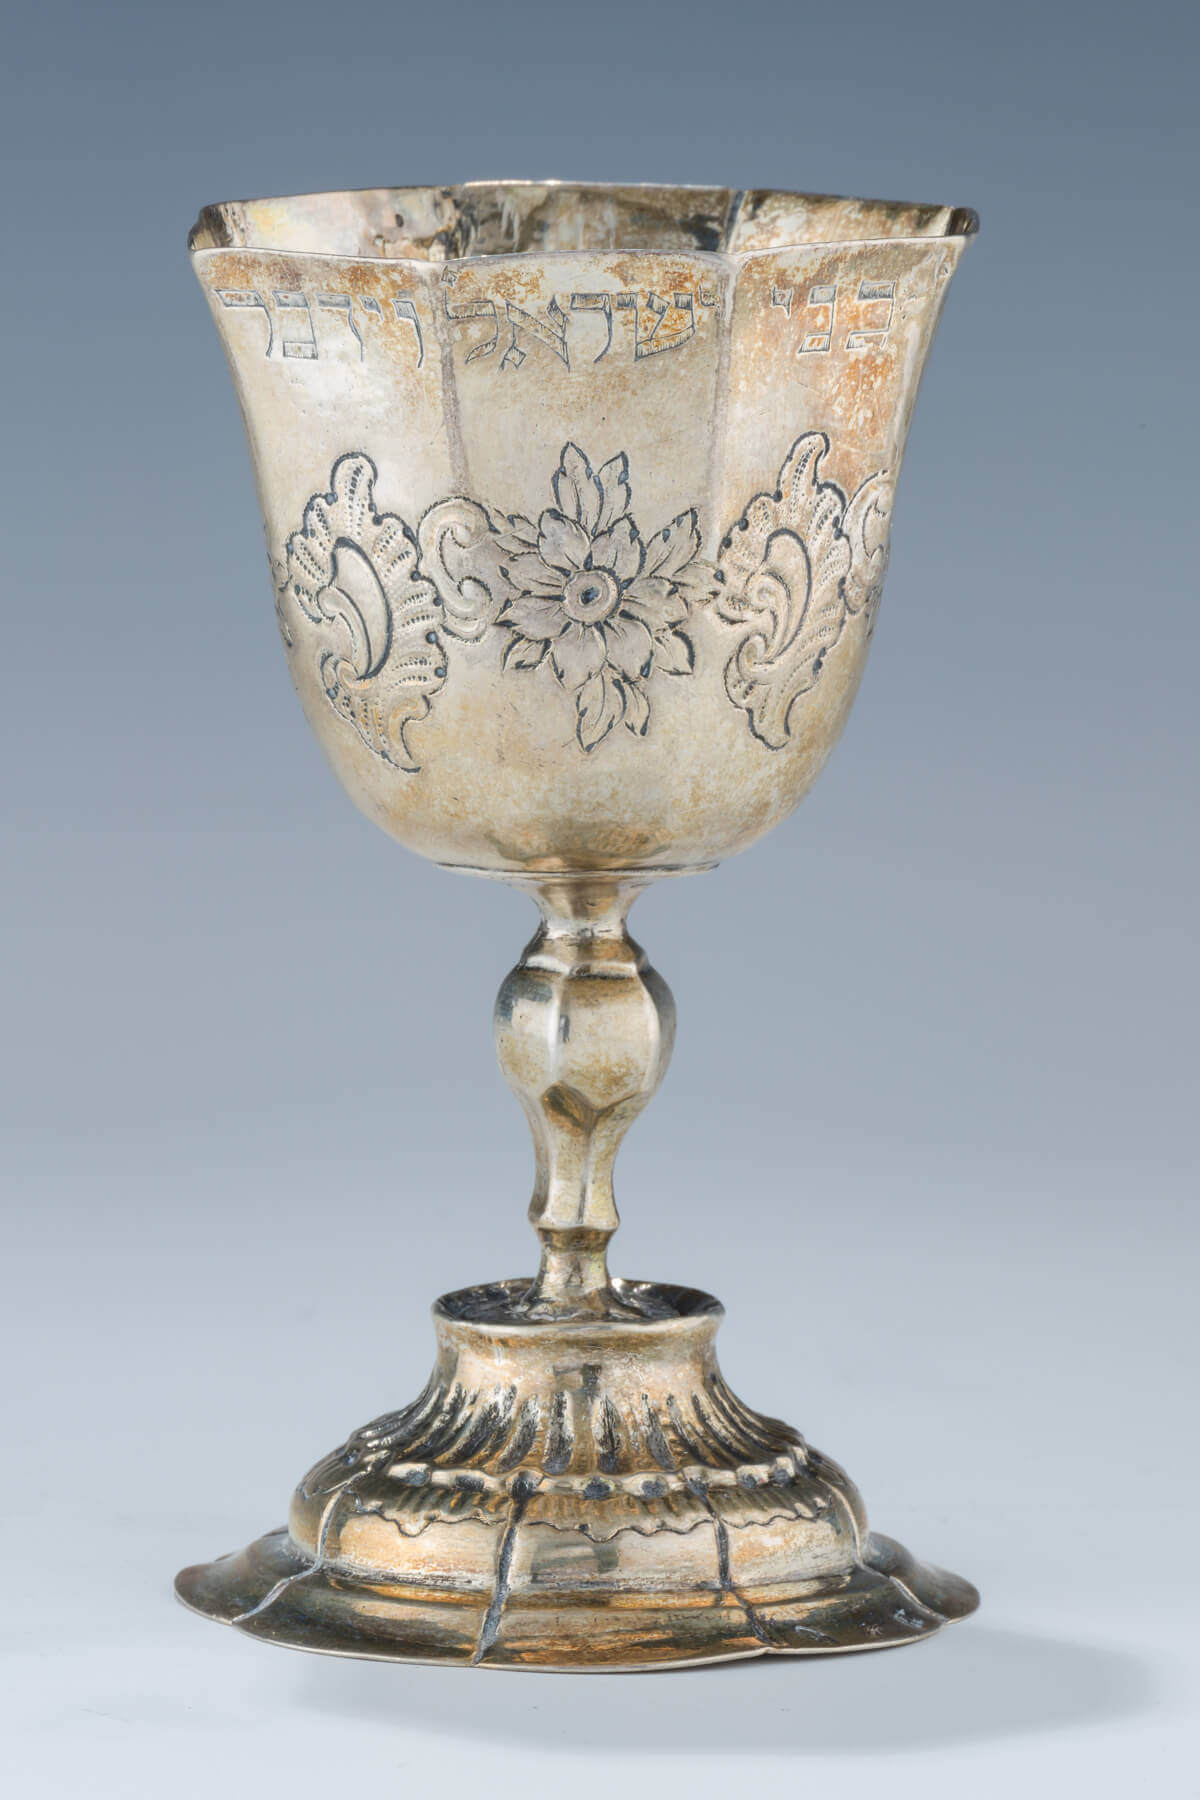 033. AN EARLY AND IMPORTANT SILVER FESTIVAL GOBLET BY Hieronymous Mittnacht